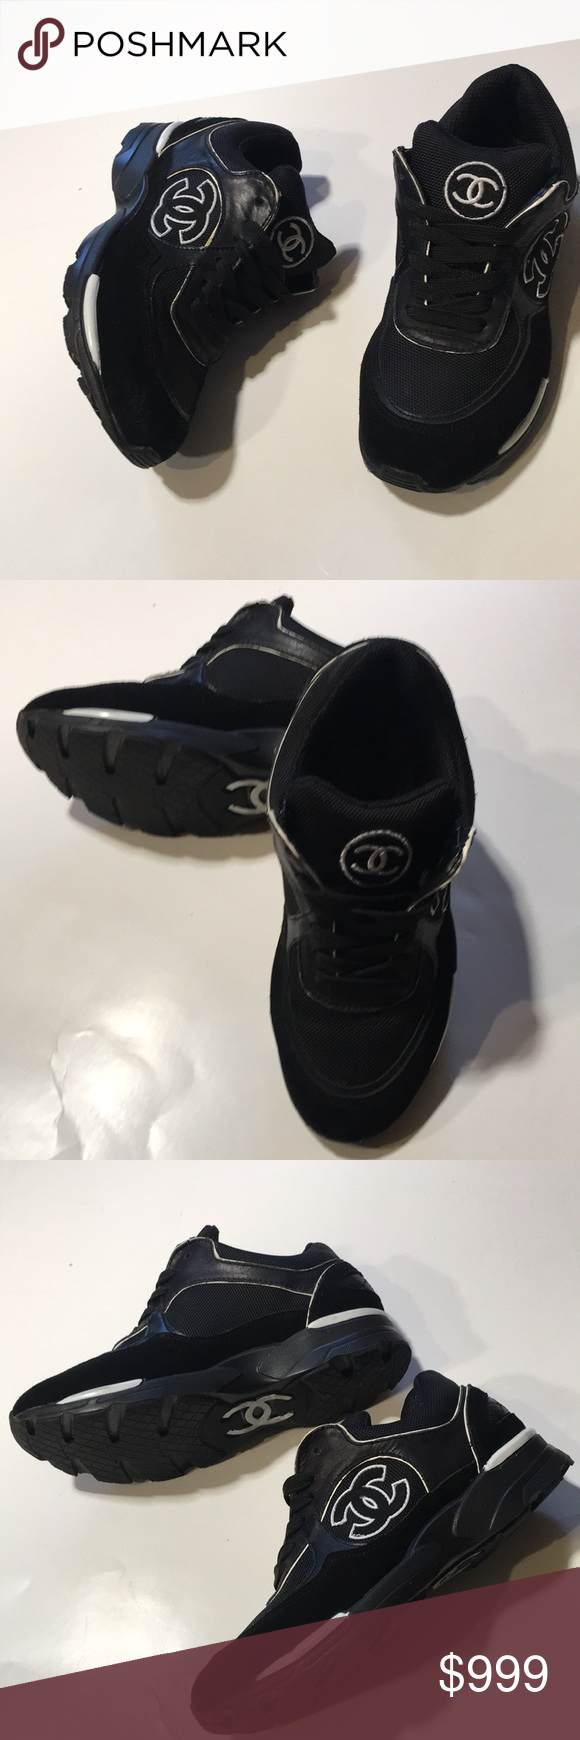 463410bf9a33 Chanel Sneakers Size 37 CHANEL Size 37 Black White IG26582 37 Bold CC logo  Partial